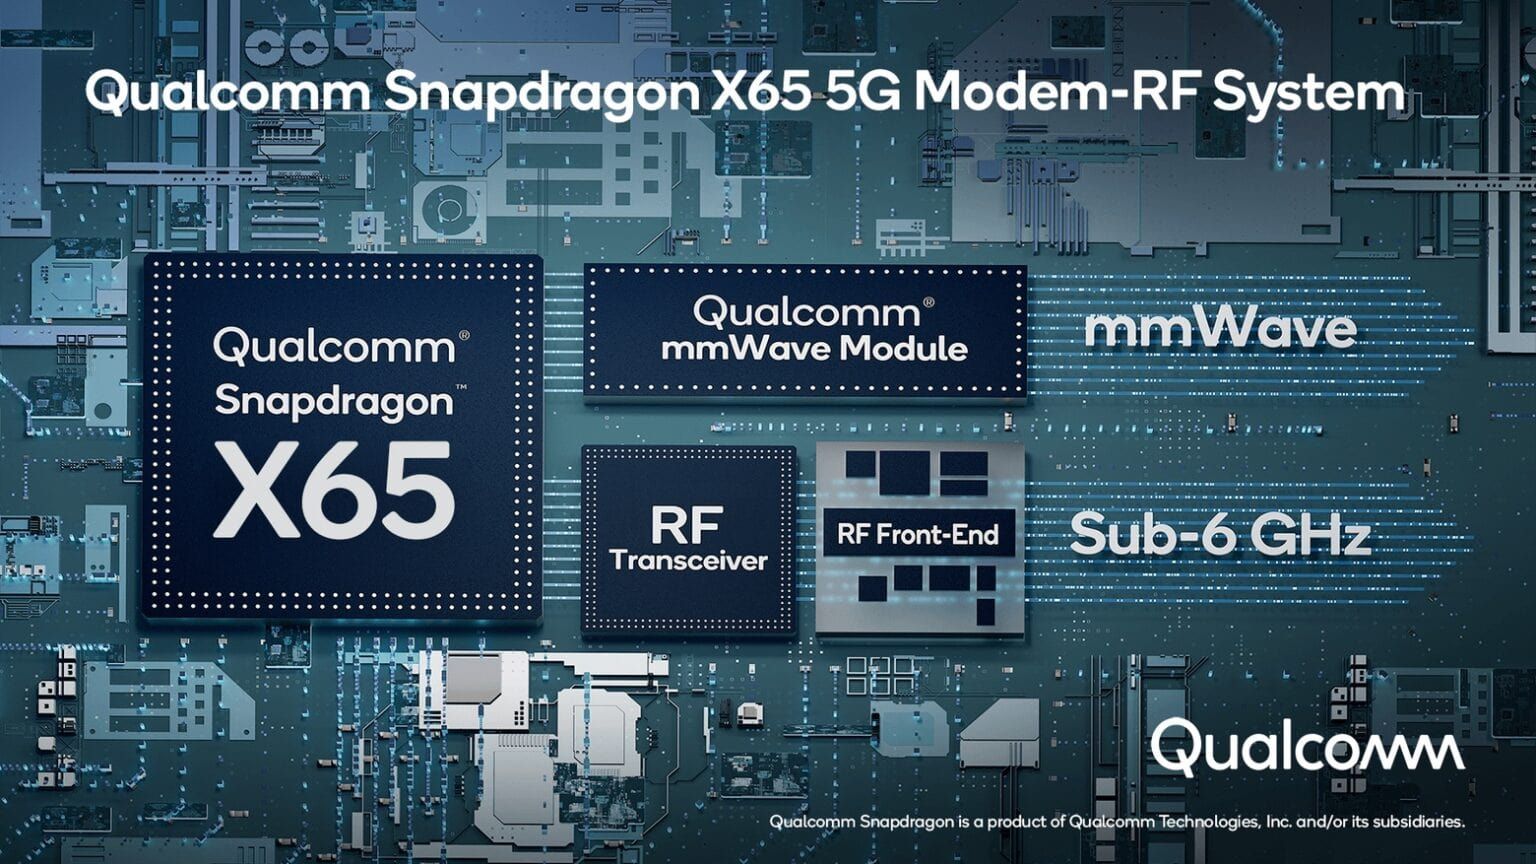 The next iPhone might use the speedy Snapdragon X65 5G modem